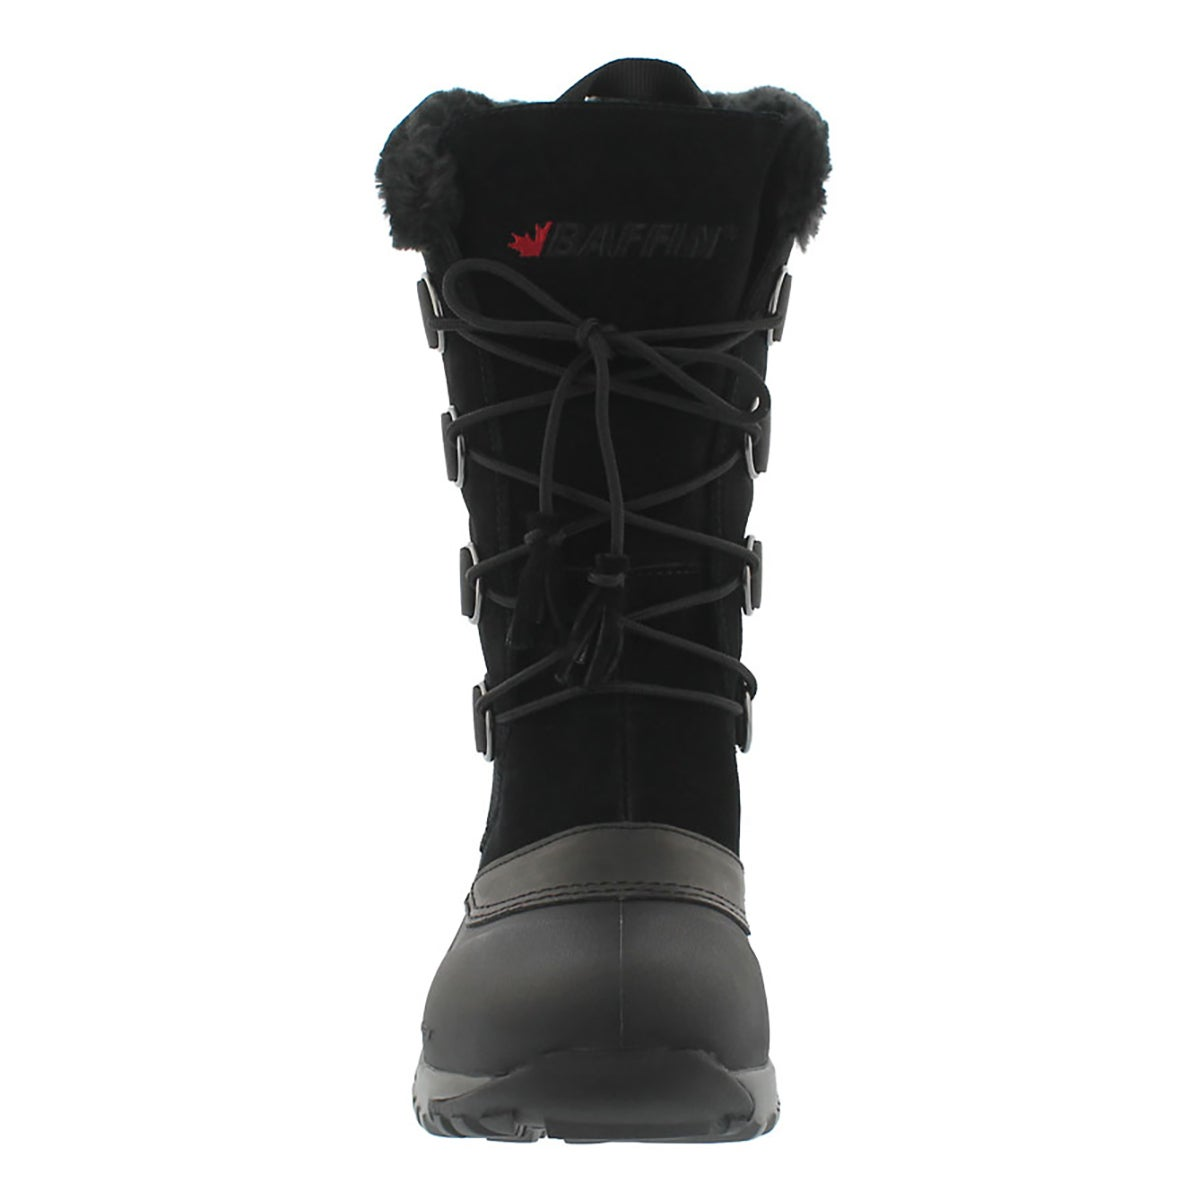 Lds Kristi blk lace up wtpf winter boot